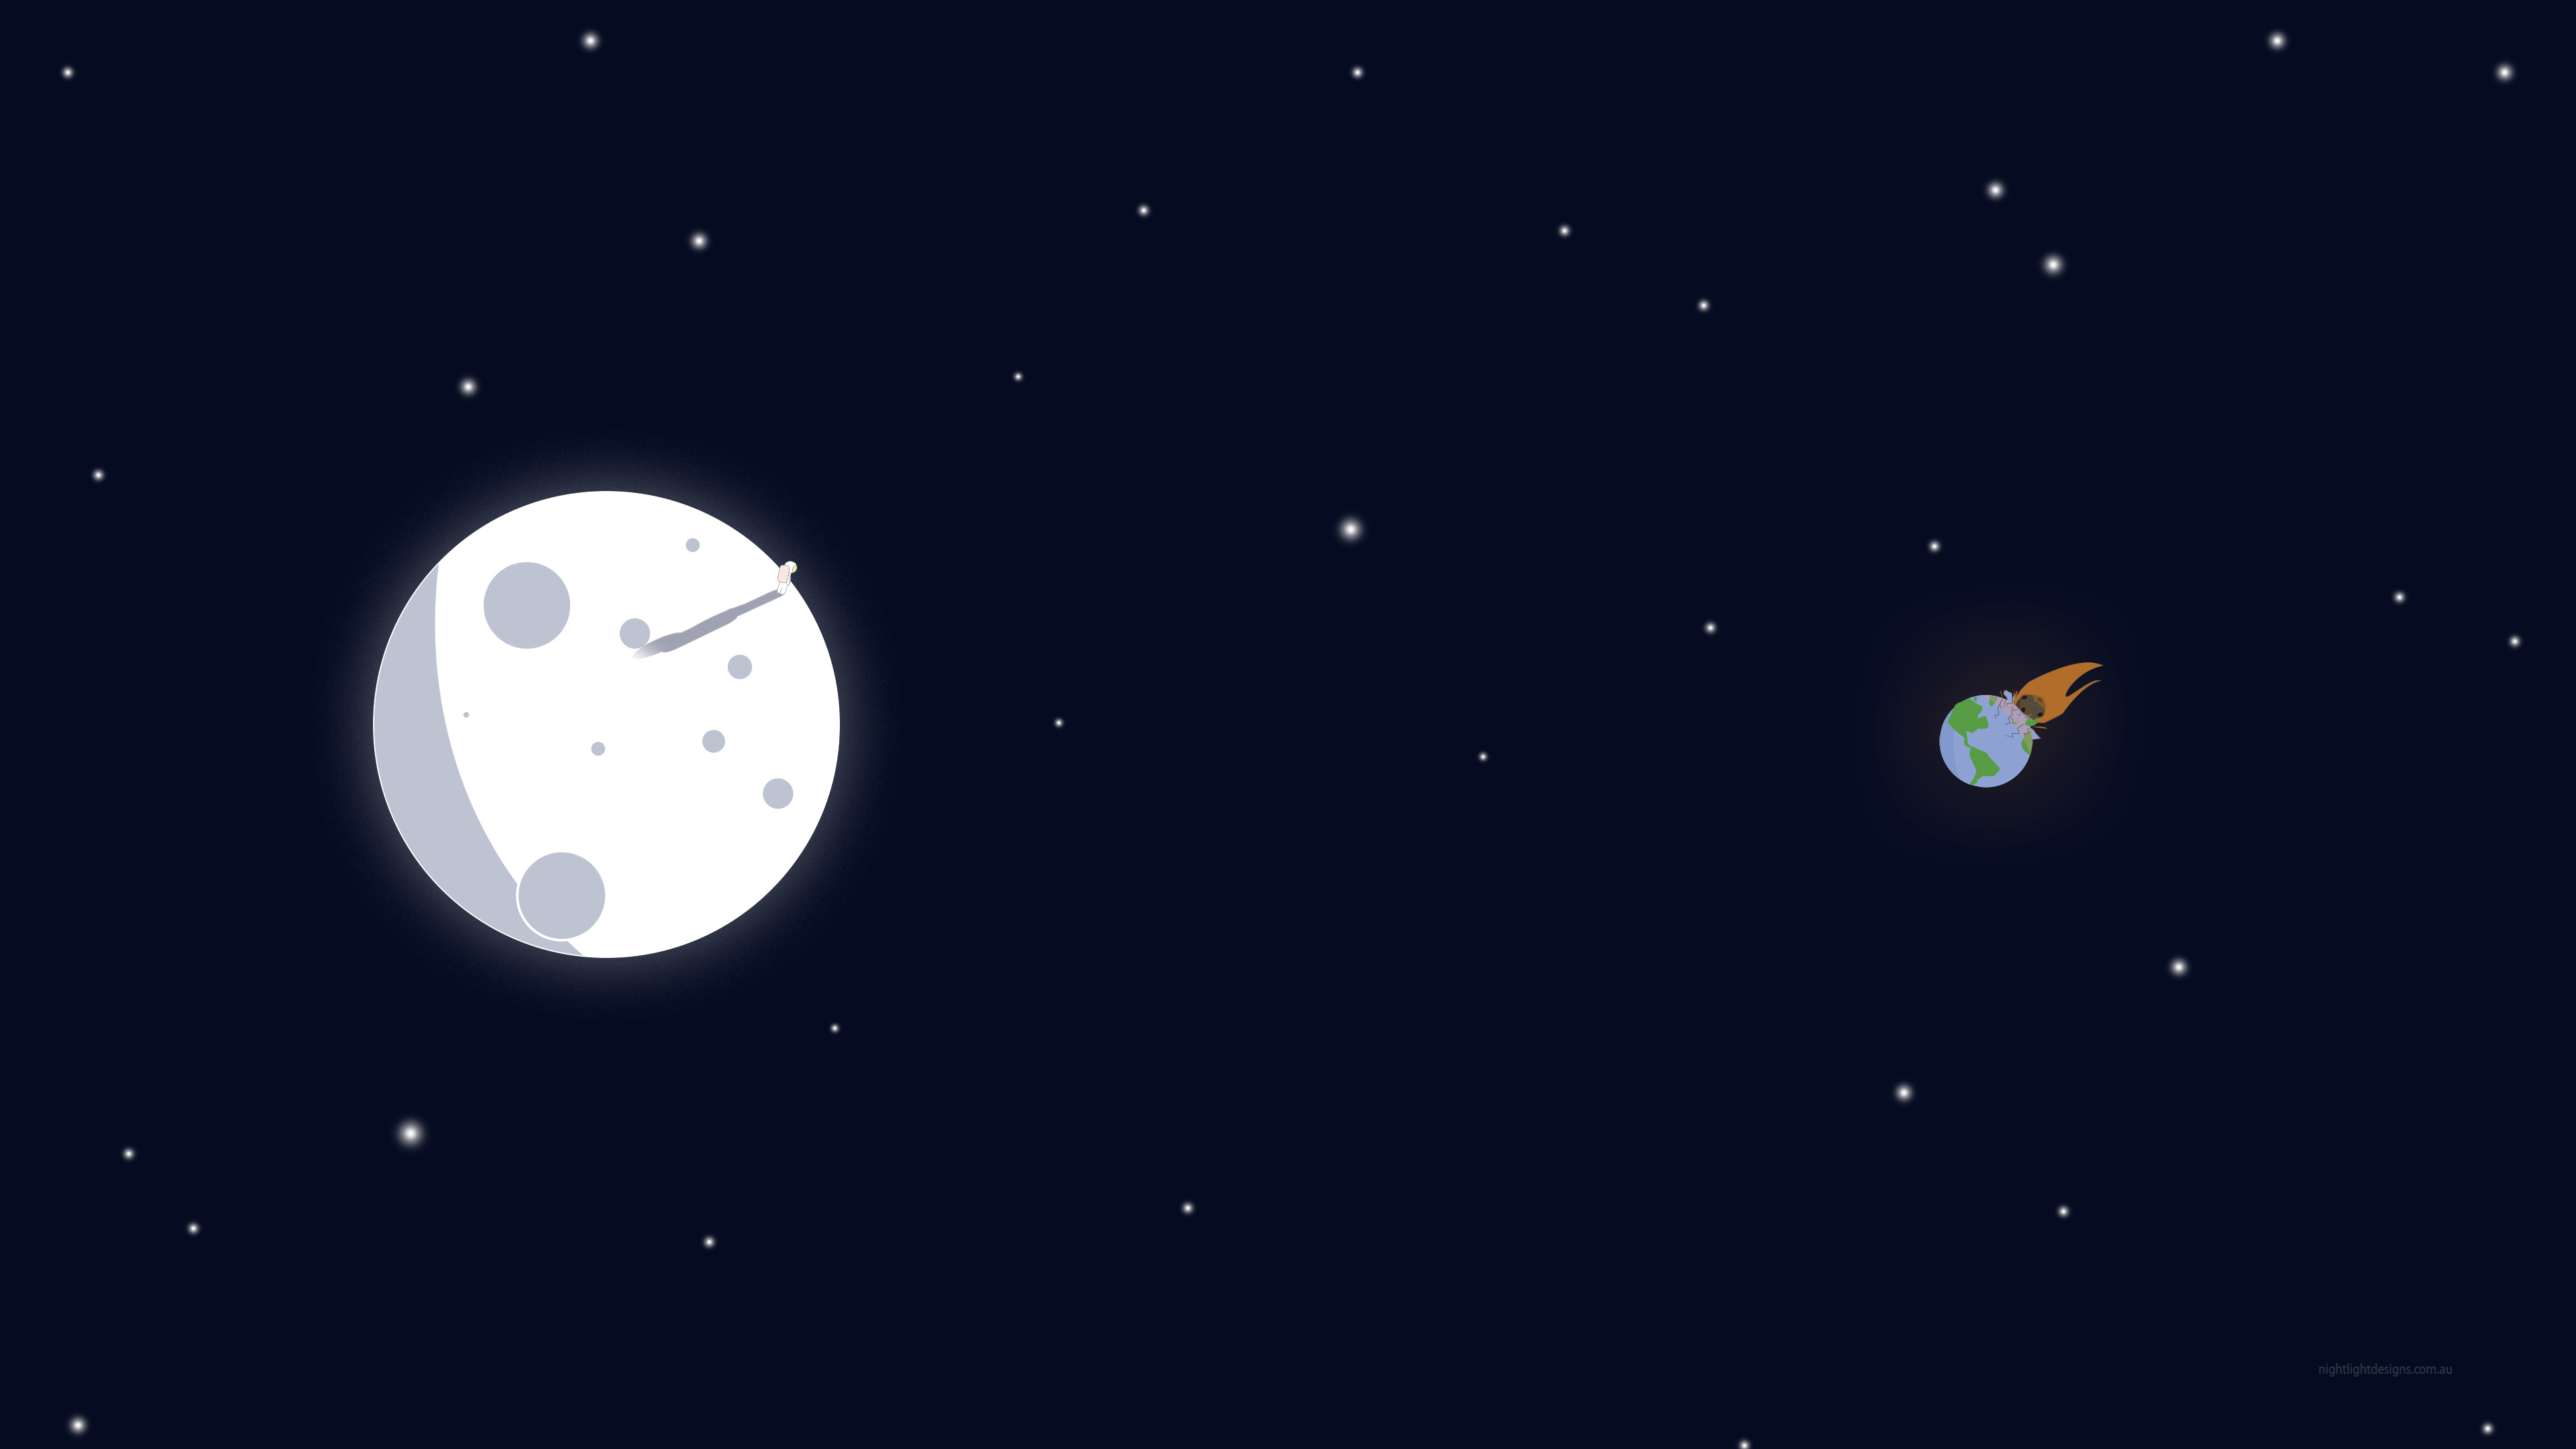 Space Moon And Earth Minimalism Art Wallpaper, HD ...